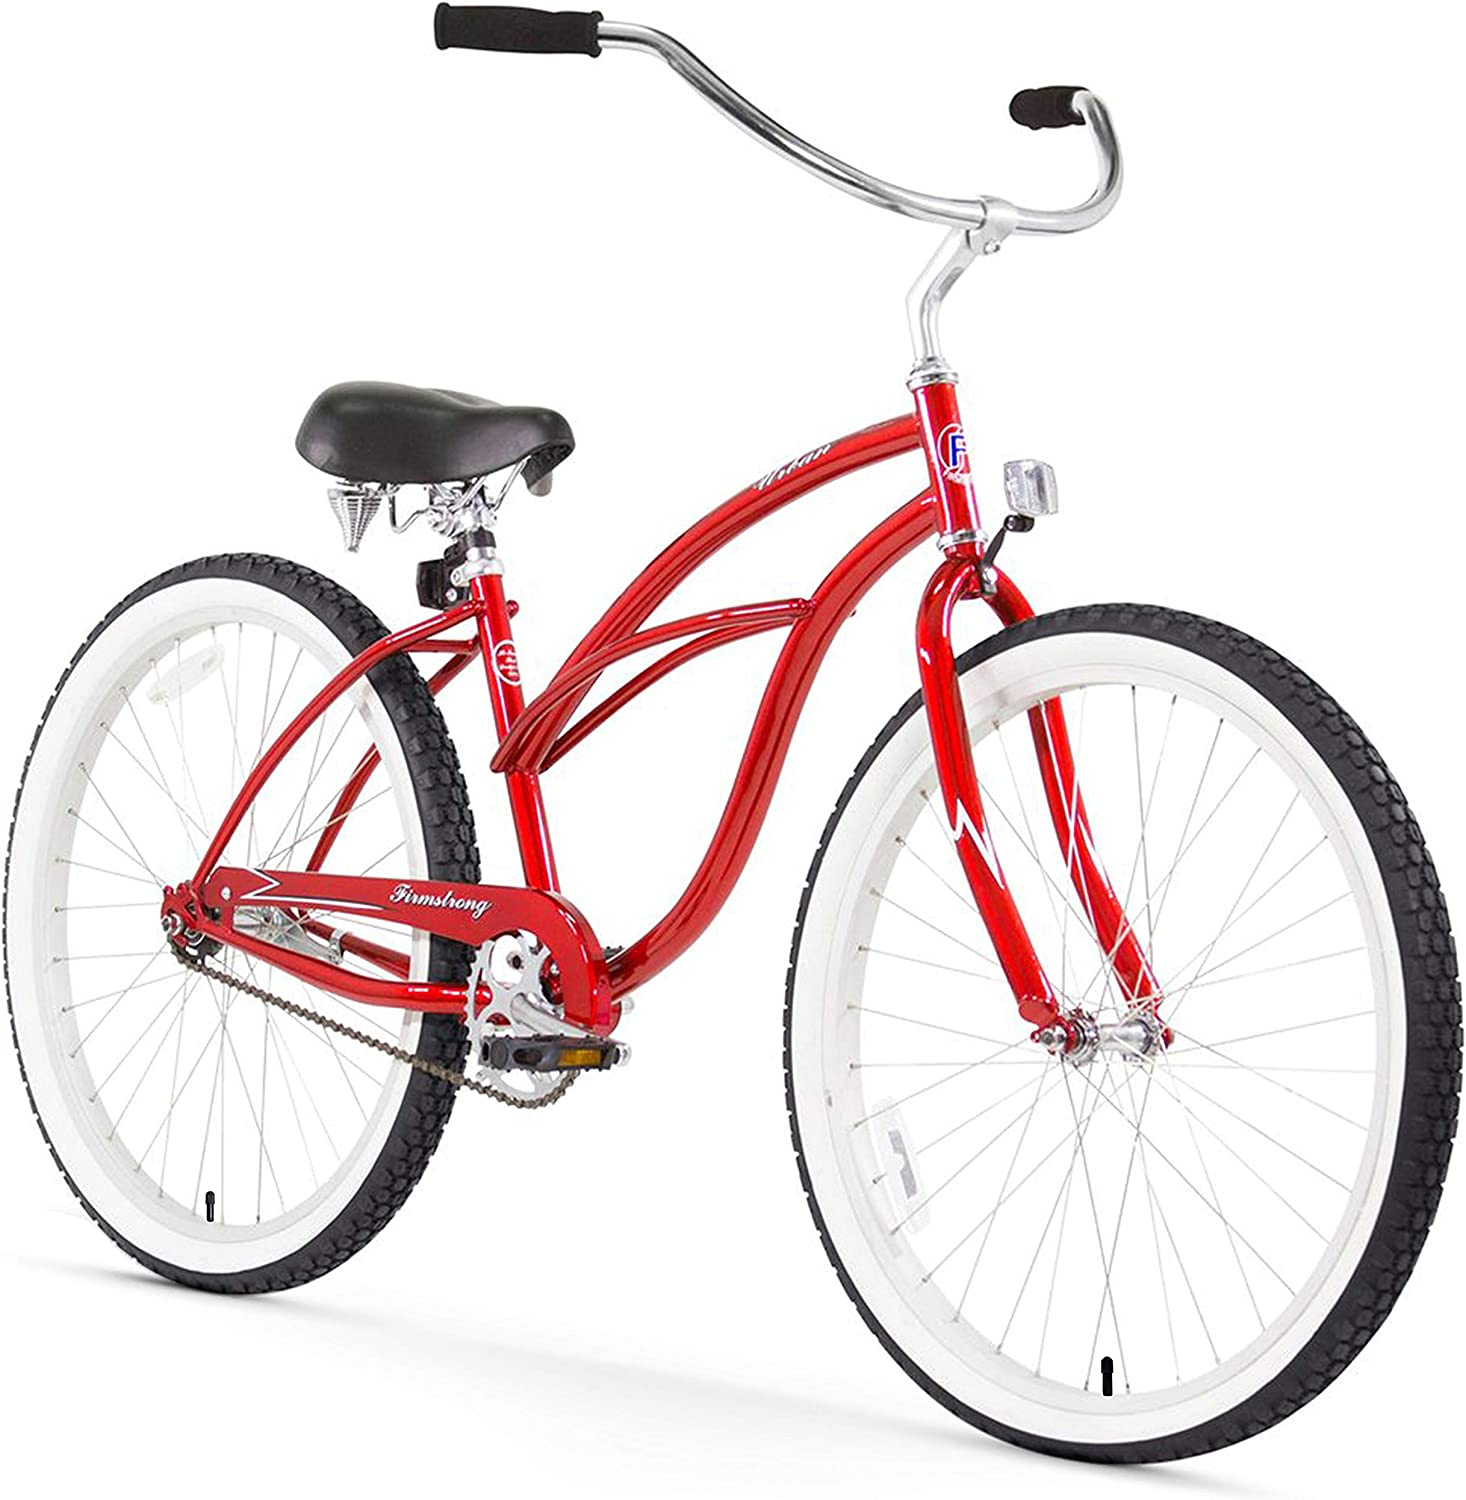 Firmstrong Urban Lady Single Speed Beach Cruiser - 300 lbs